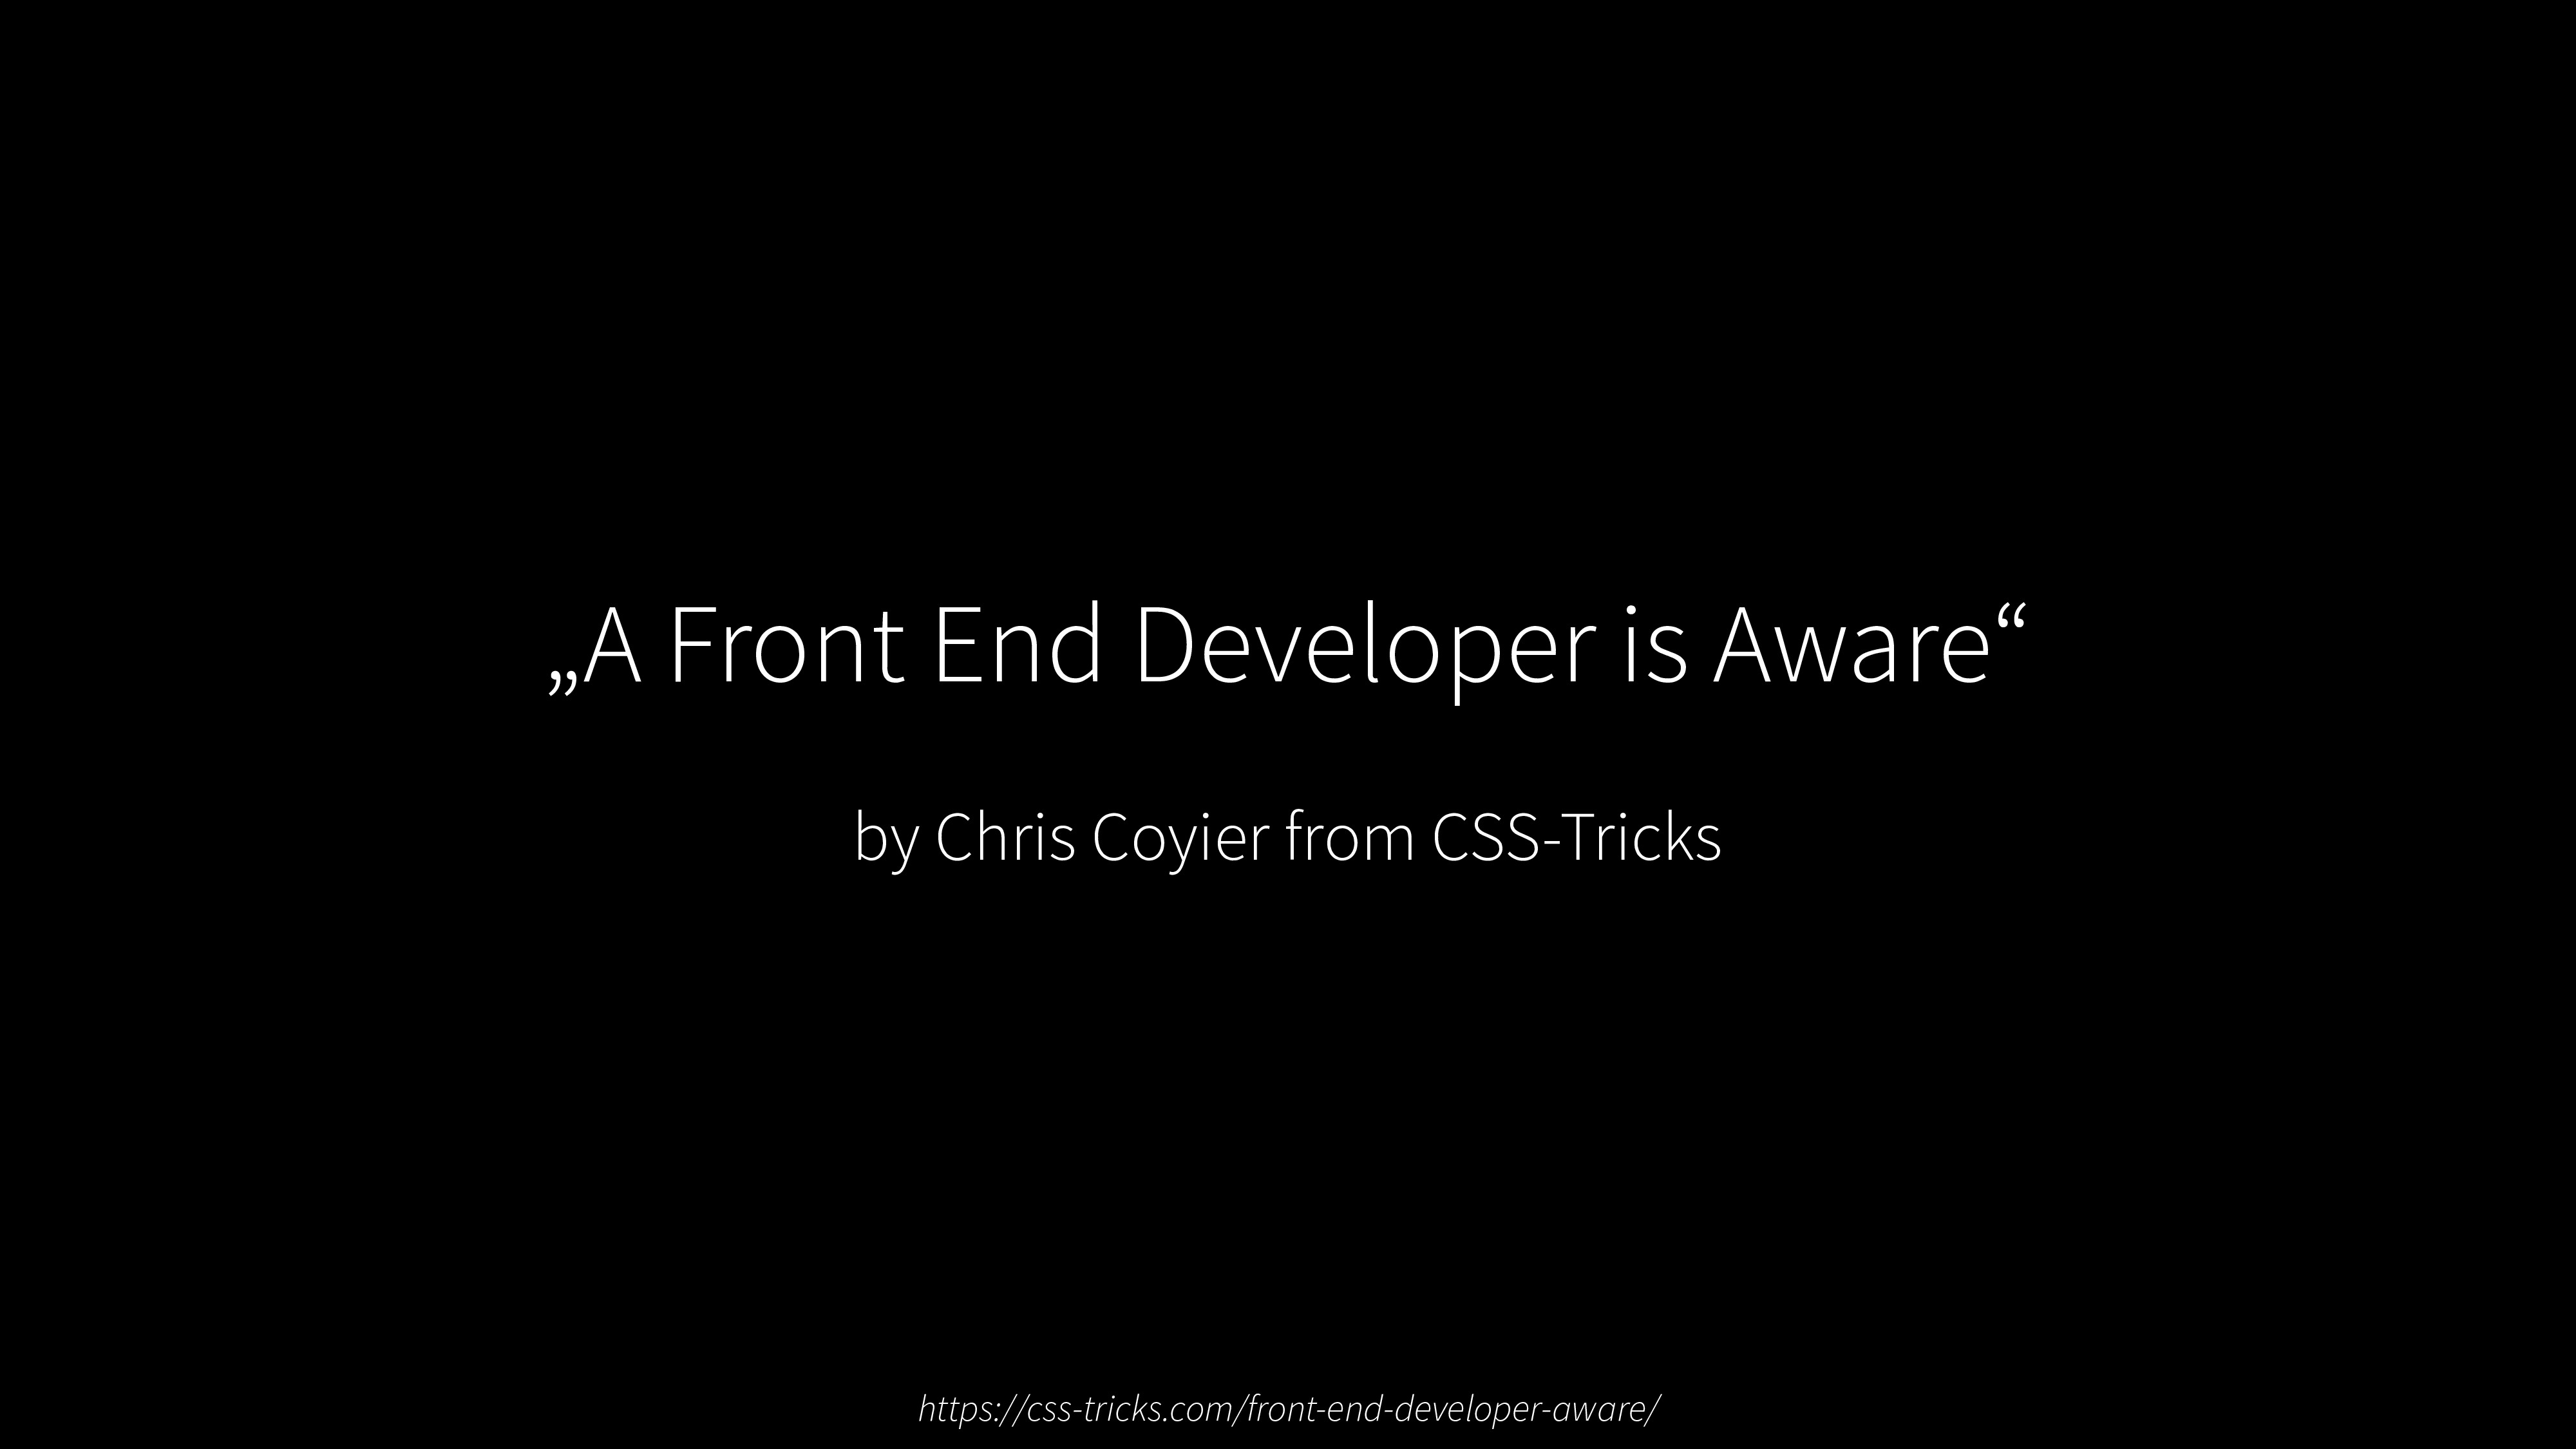 """A Front End Developer is Aware"" by Chris Coyie..."